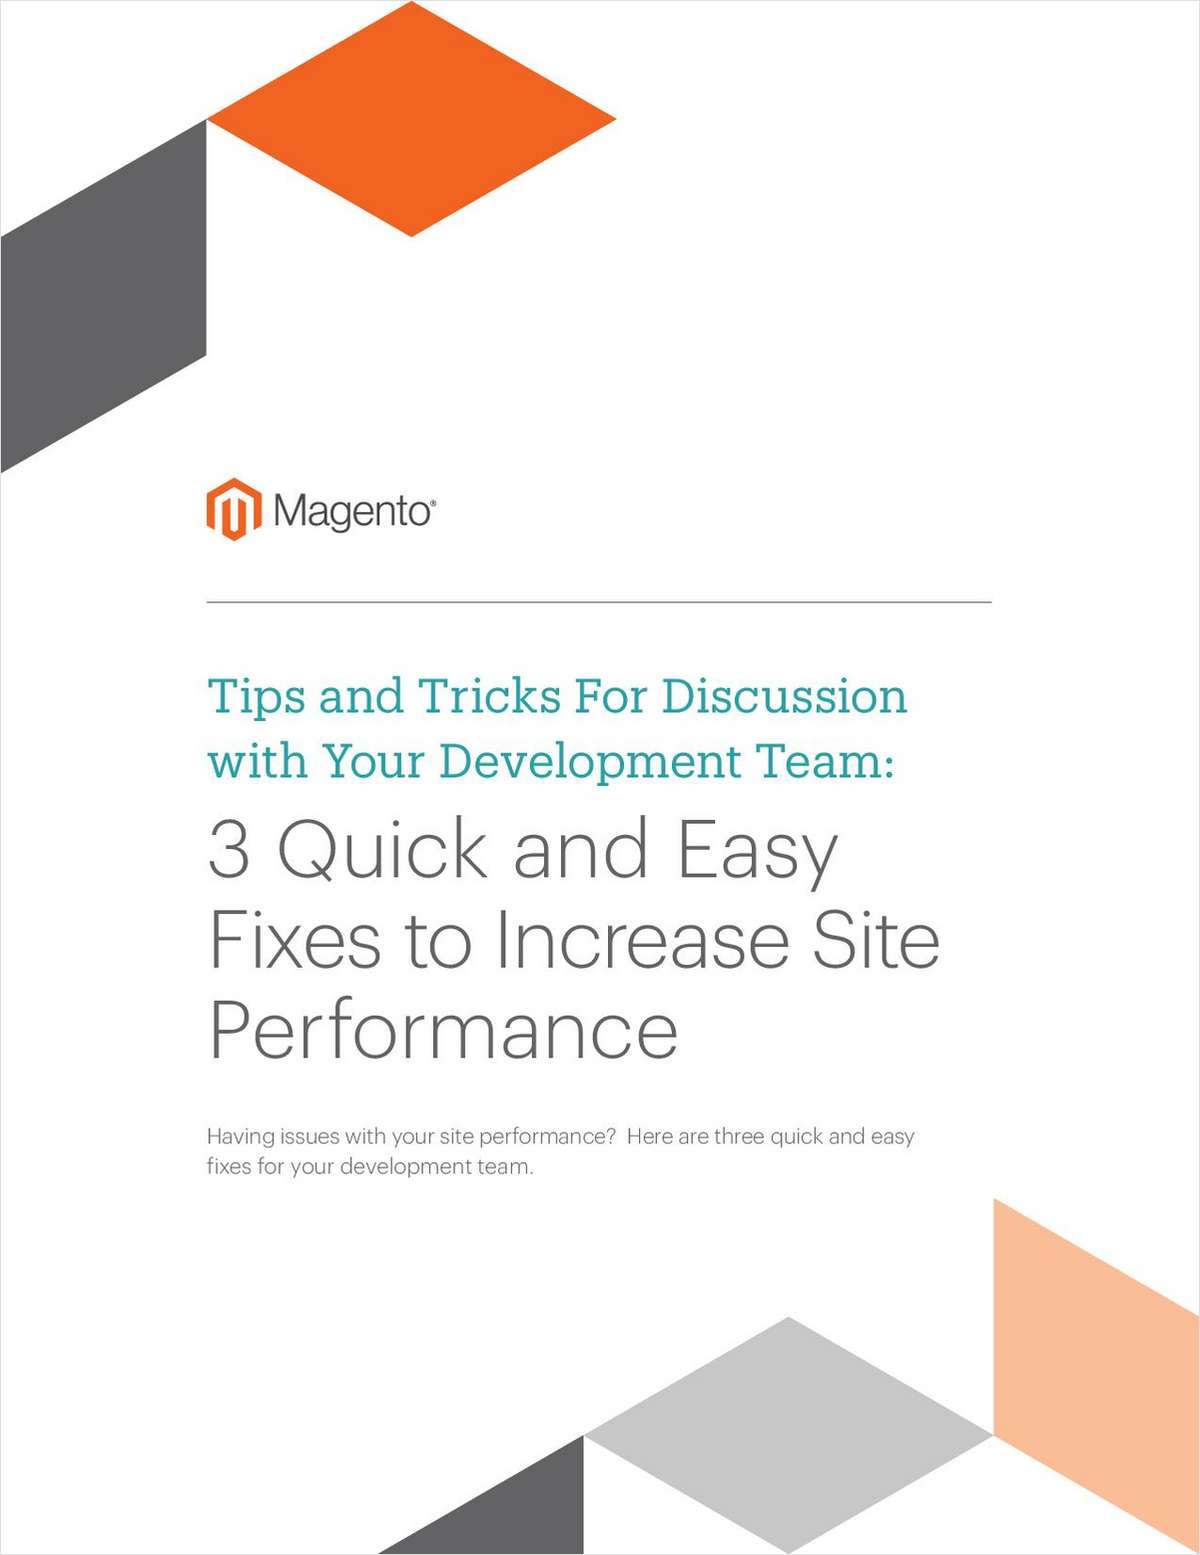 3 Quick and Easy Fixes to Increase Site Performance